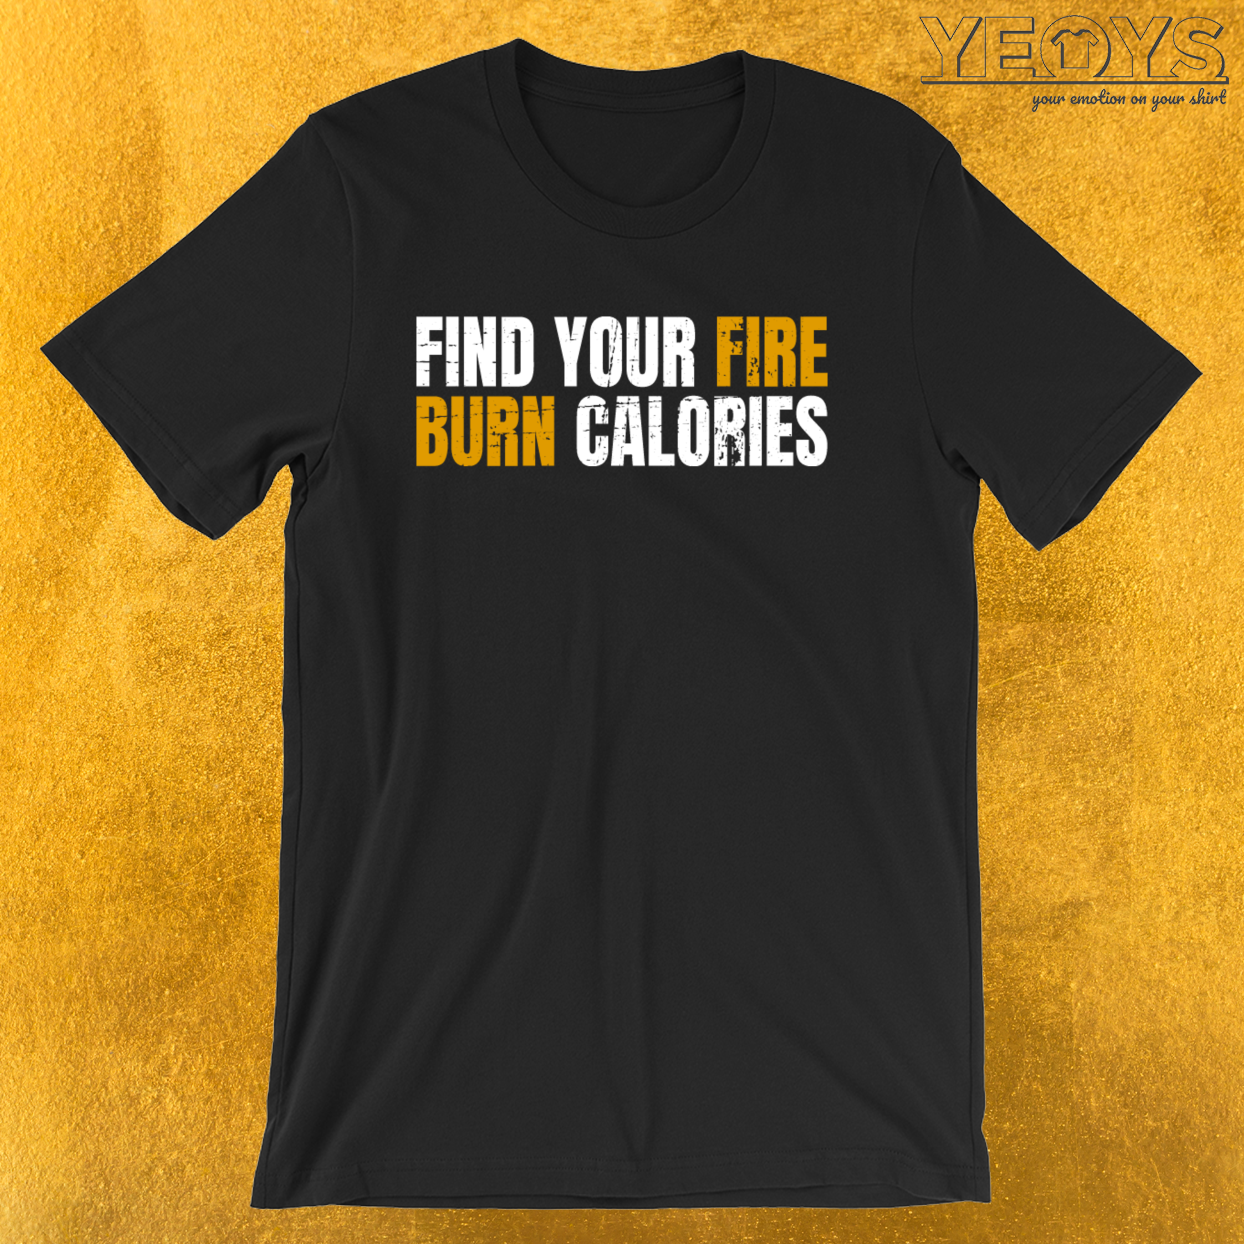 Find Your Fire And Burn Calories – Calorie Burning Tee